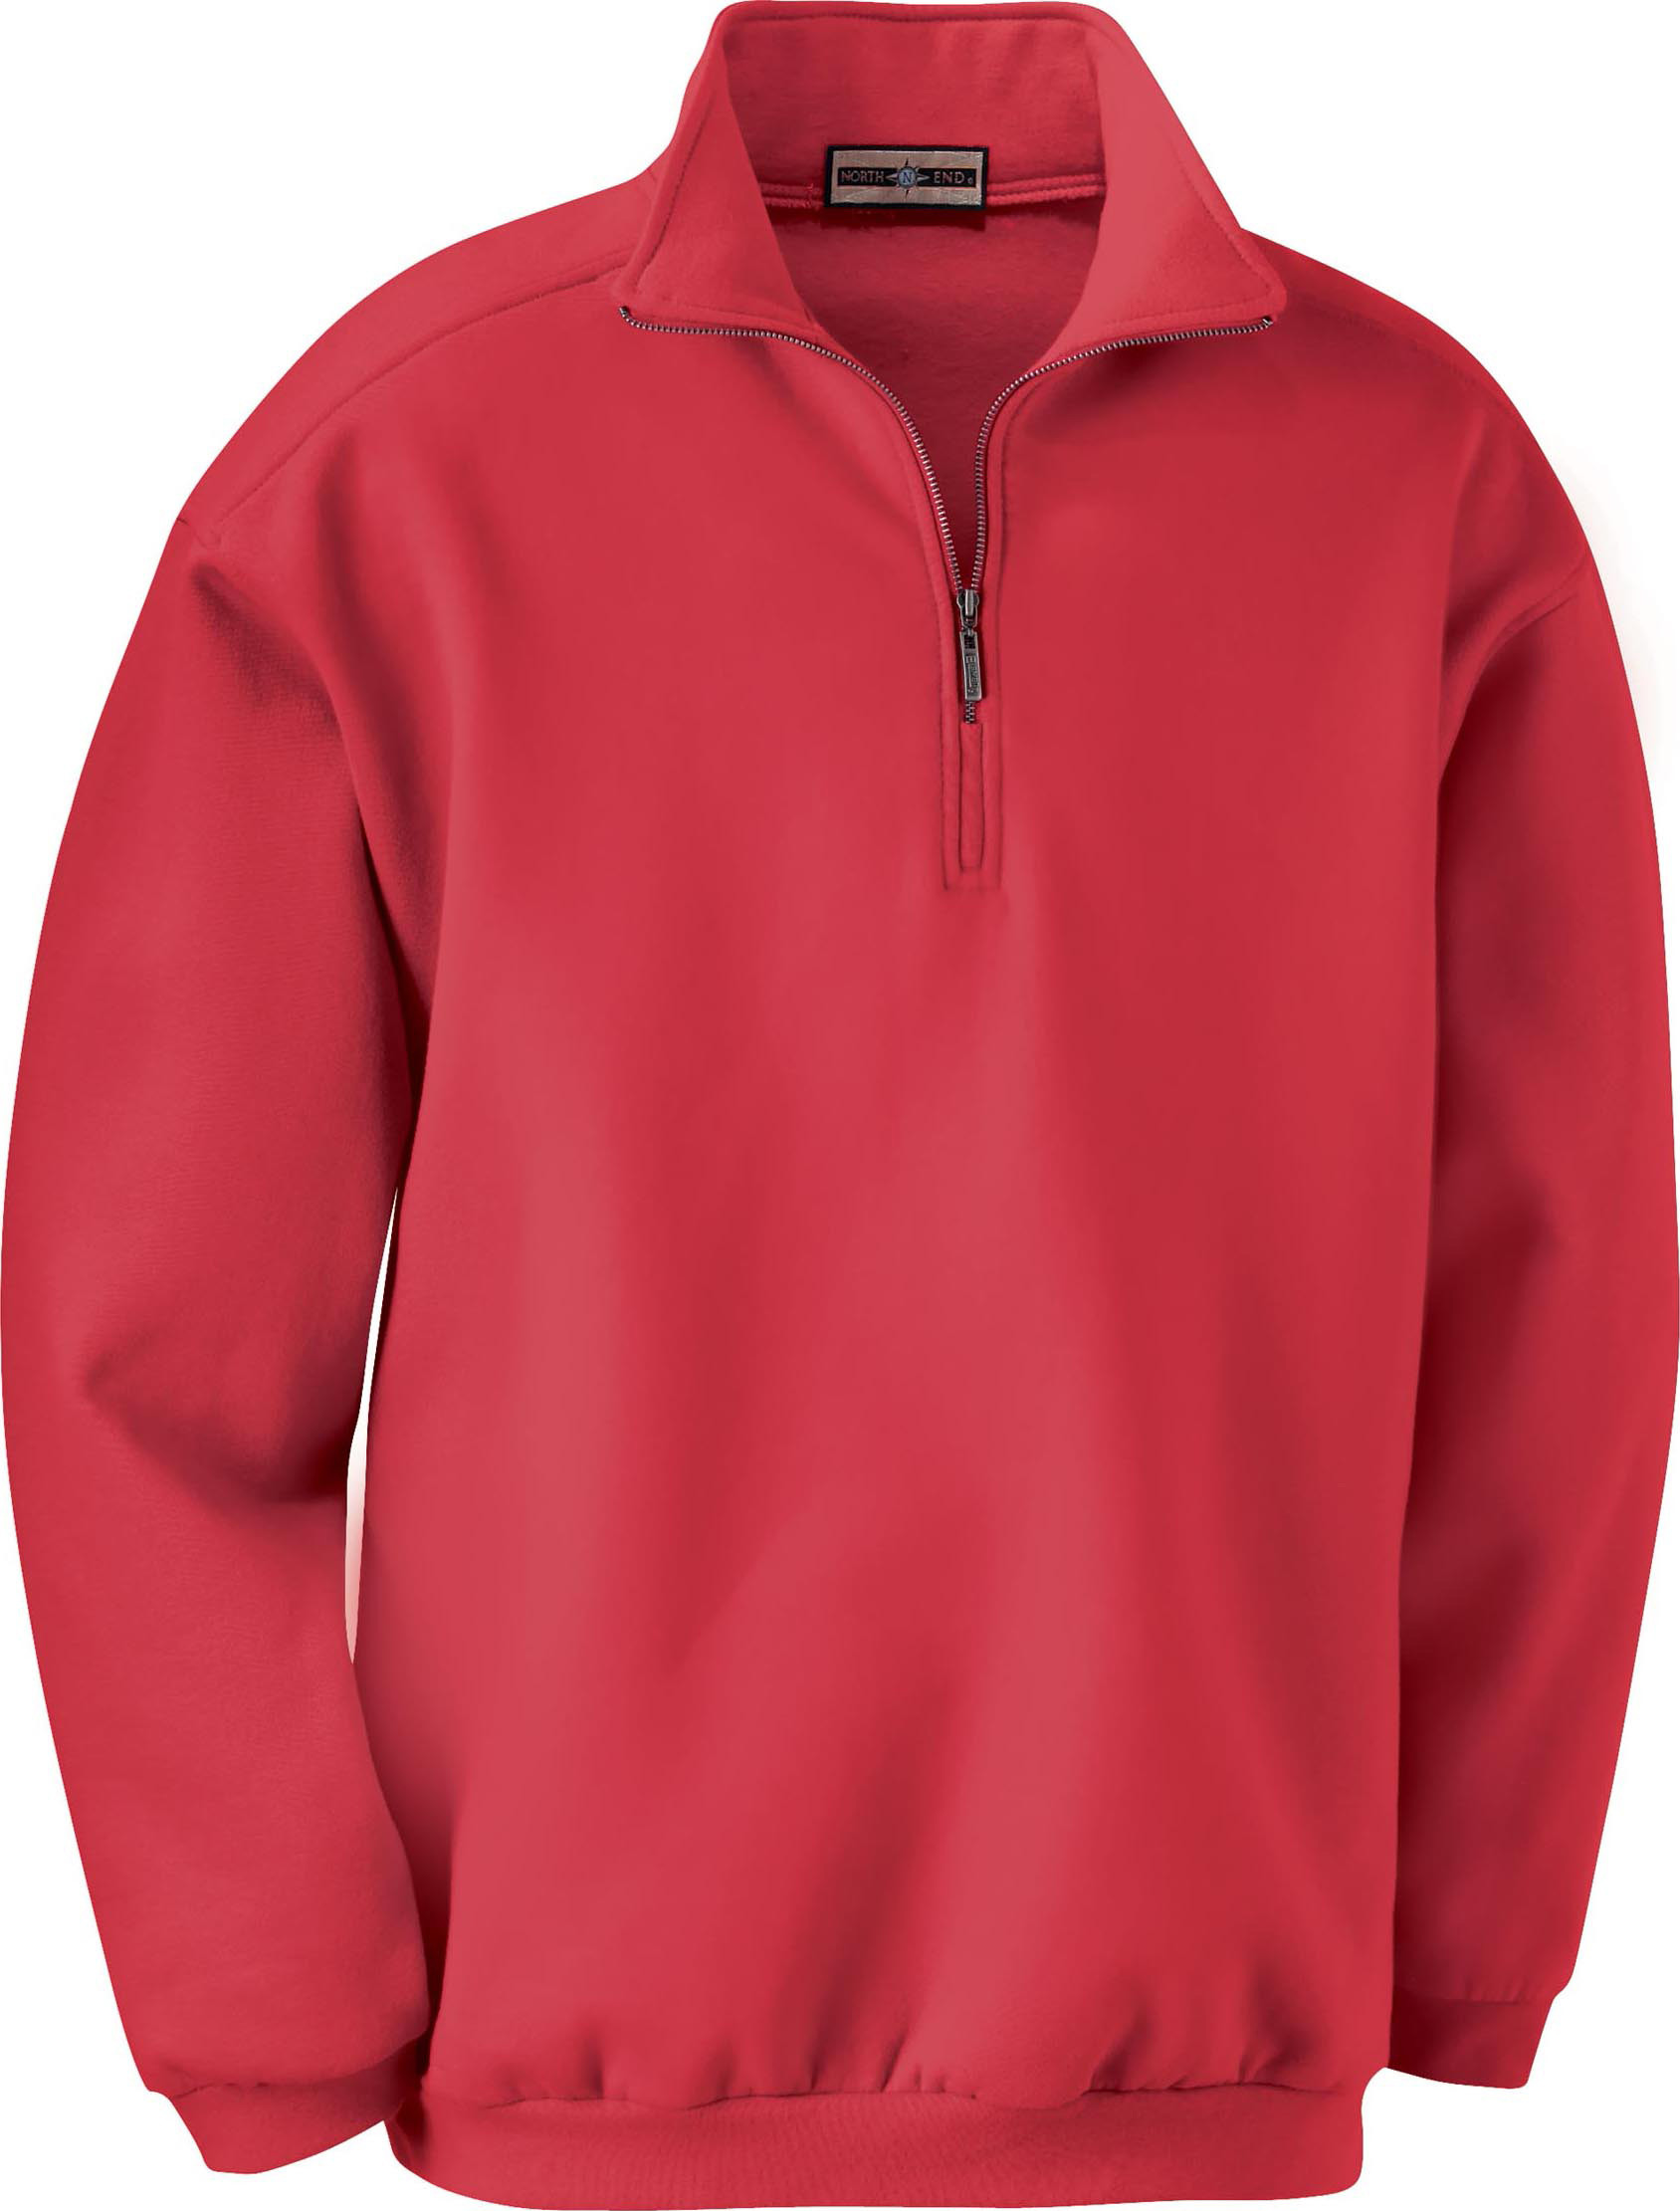 Harrington Fleece Half Zip Pullovers - from $14.99